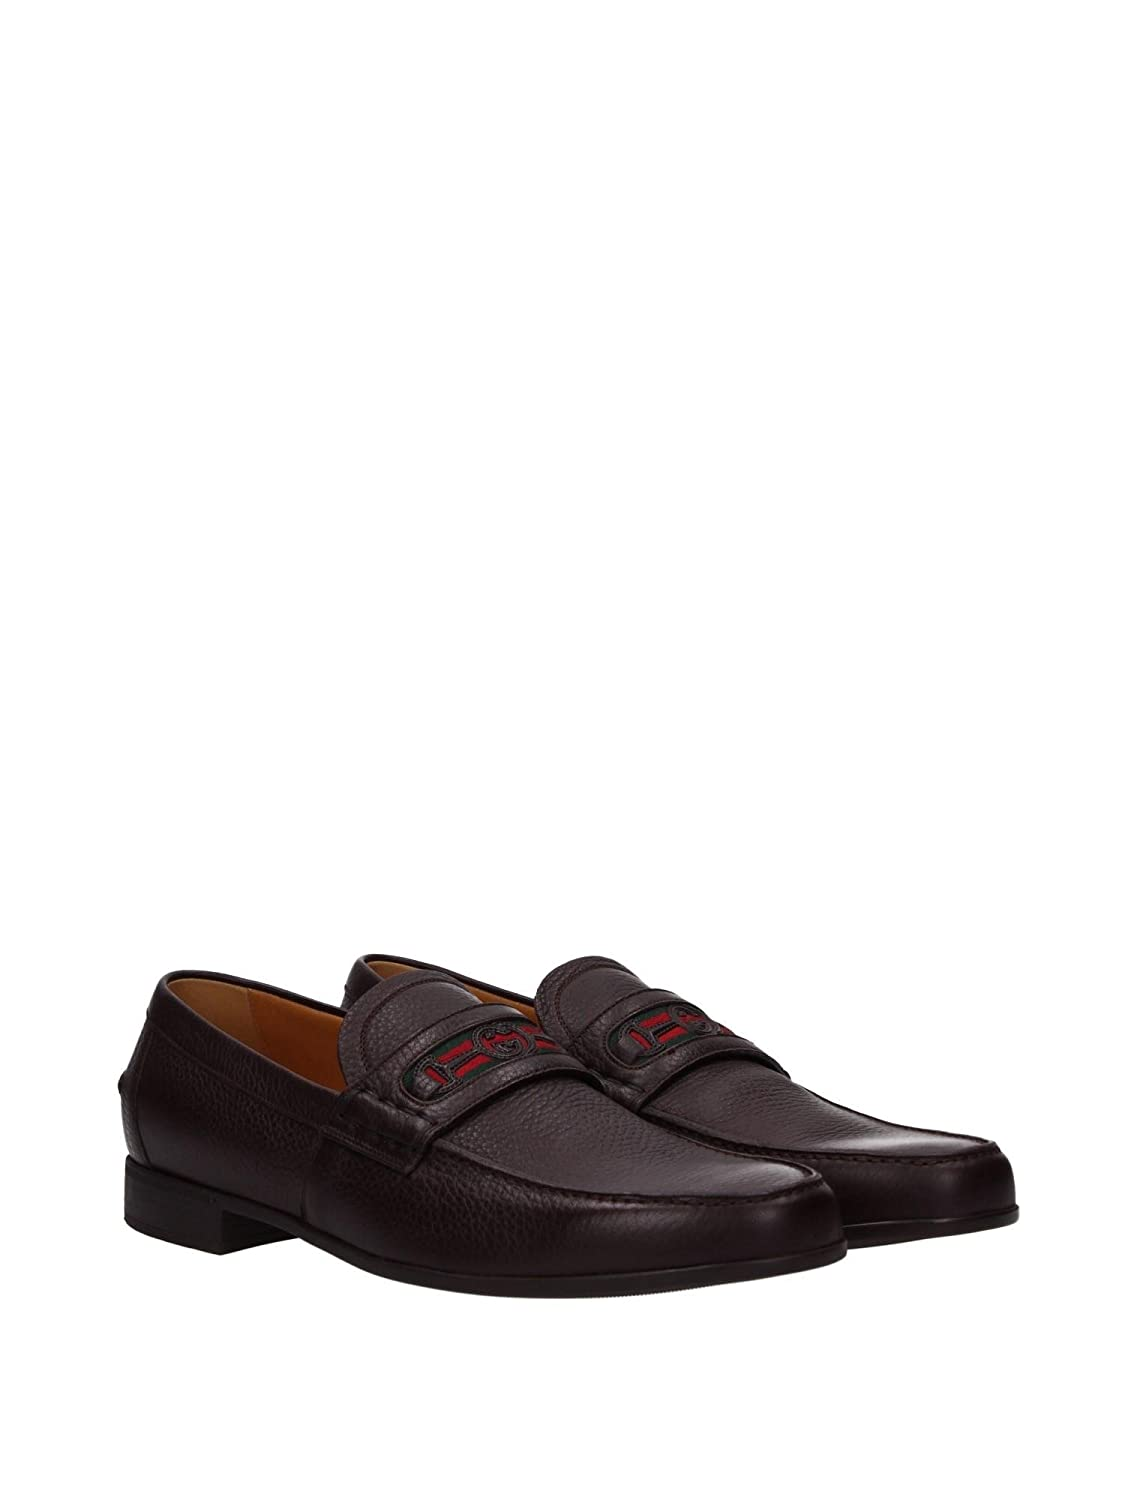 Gucci - Mocasines para hombre, color, talla 7 UK: Amazon.es: Zapatos y complementos